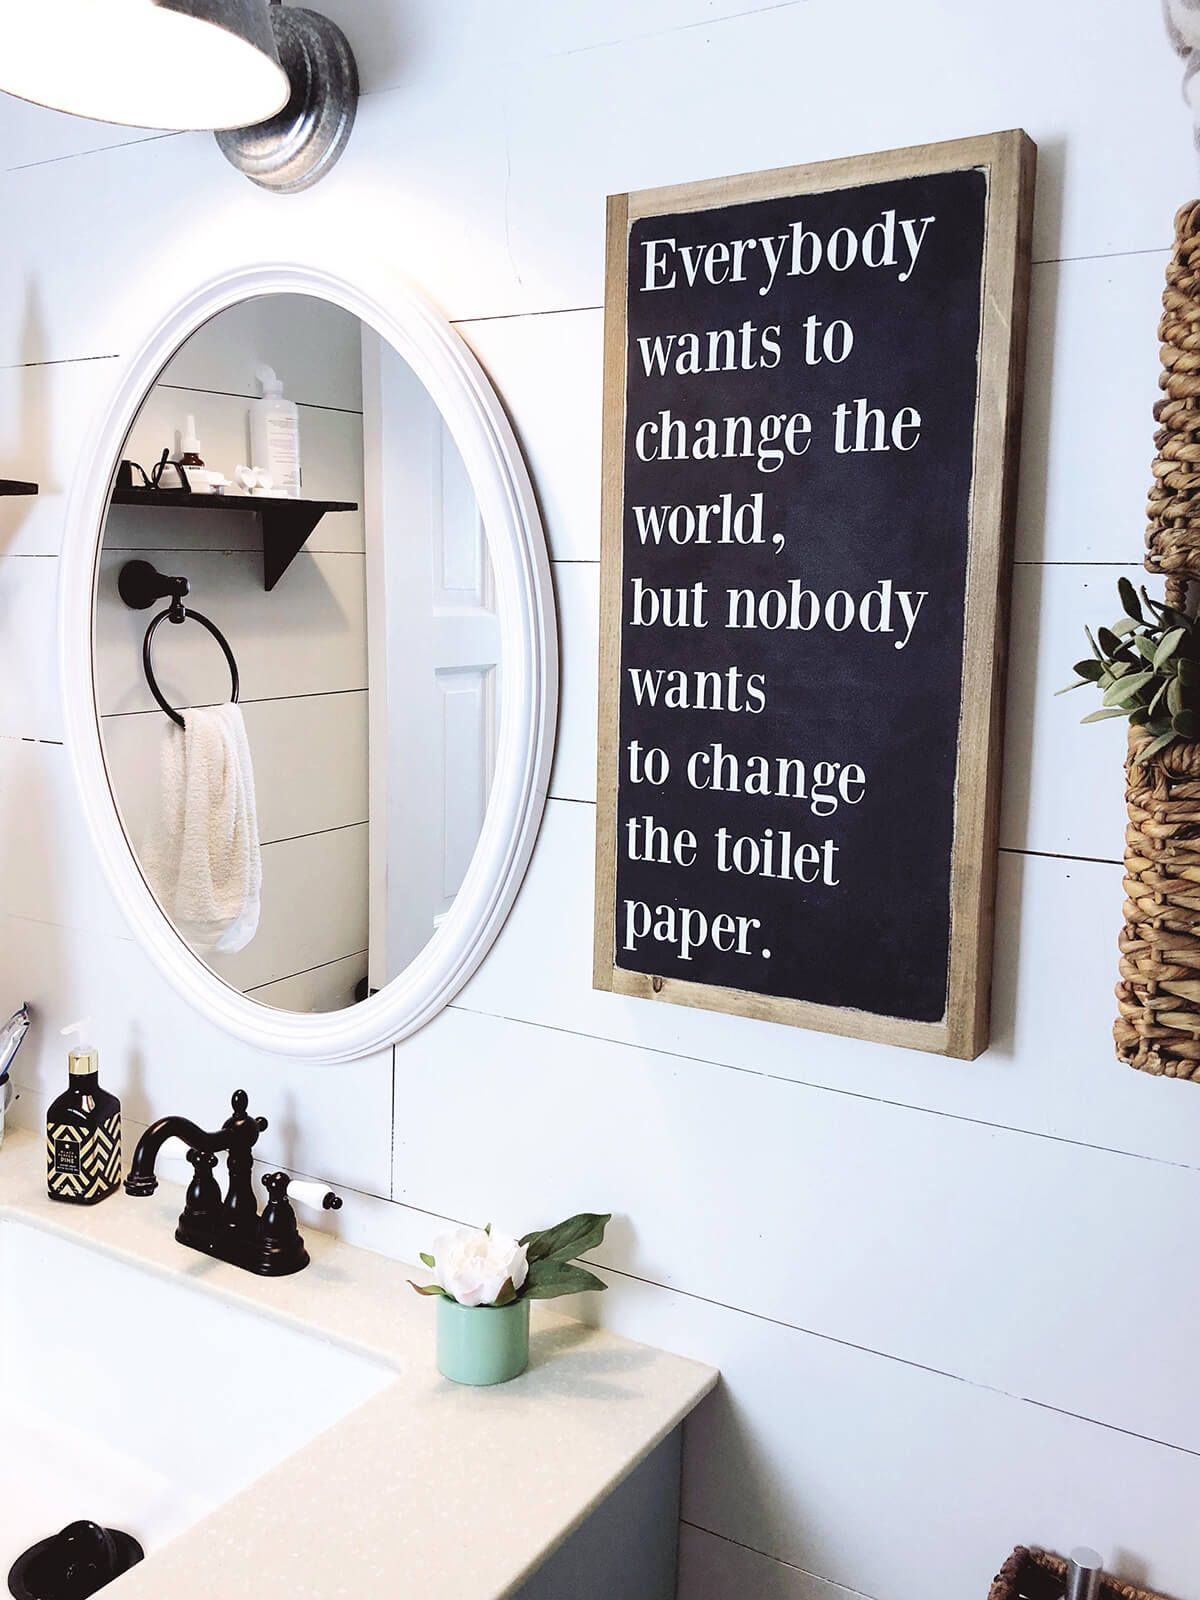 Give yourself a reminder to change the toilet paper with a fun sign in the bathroom